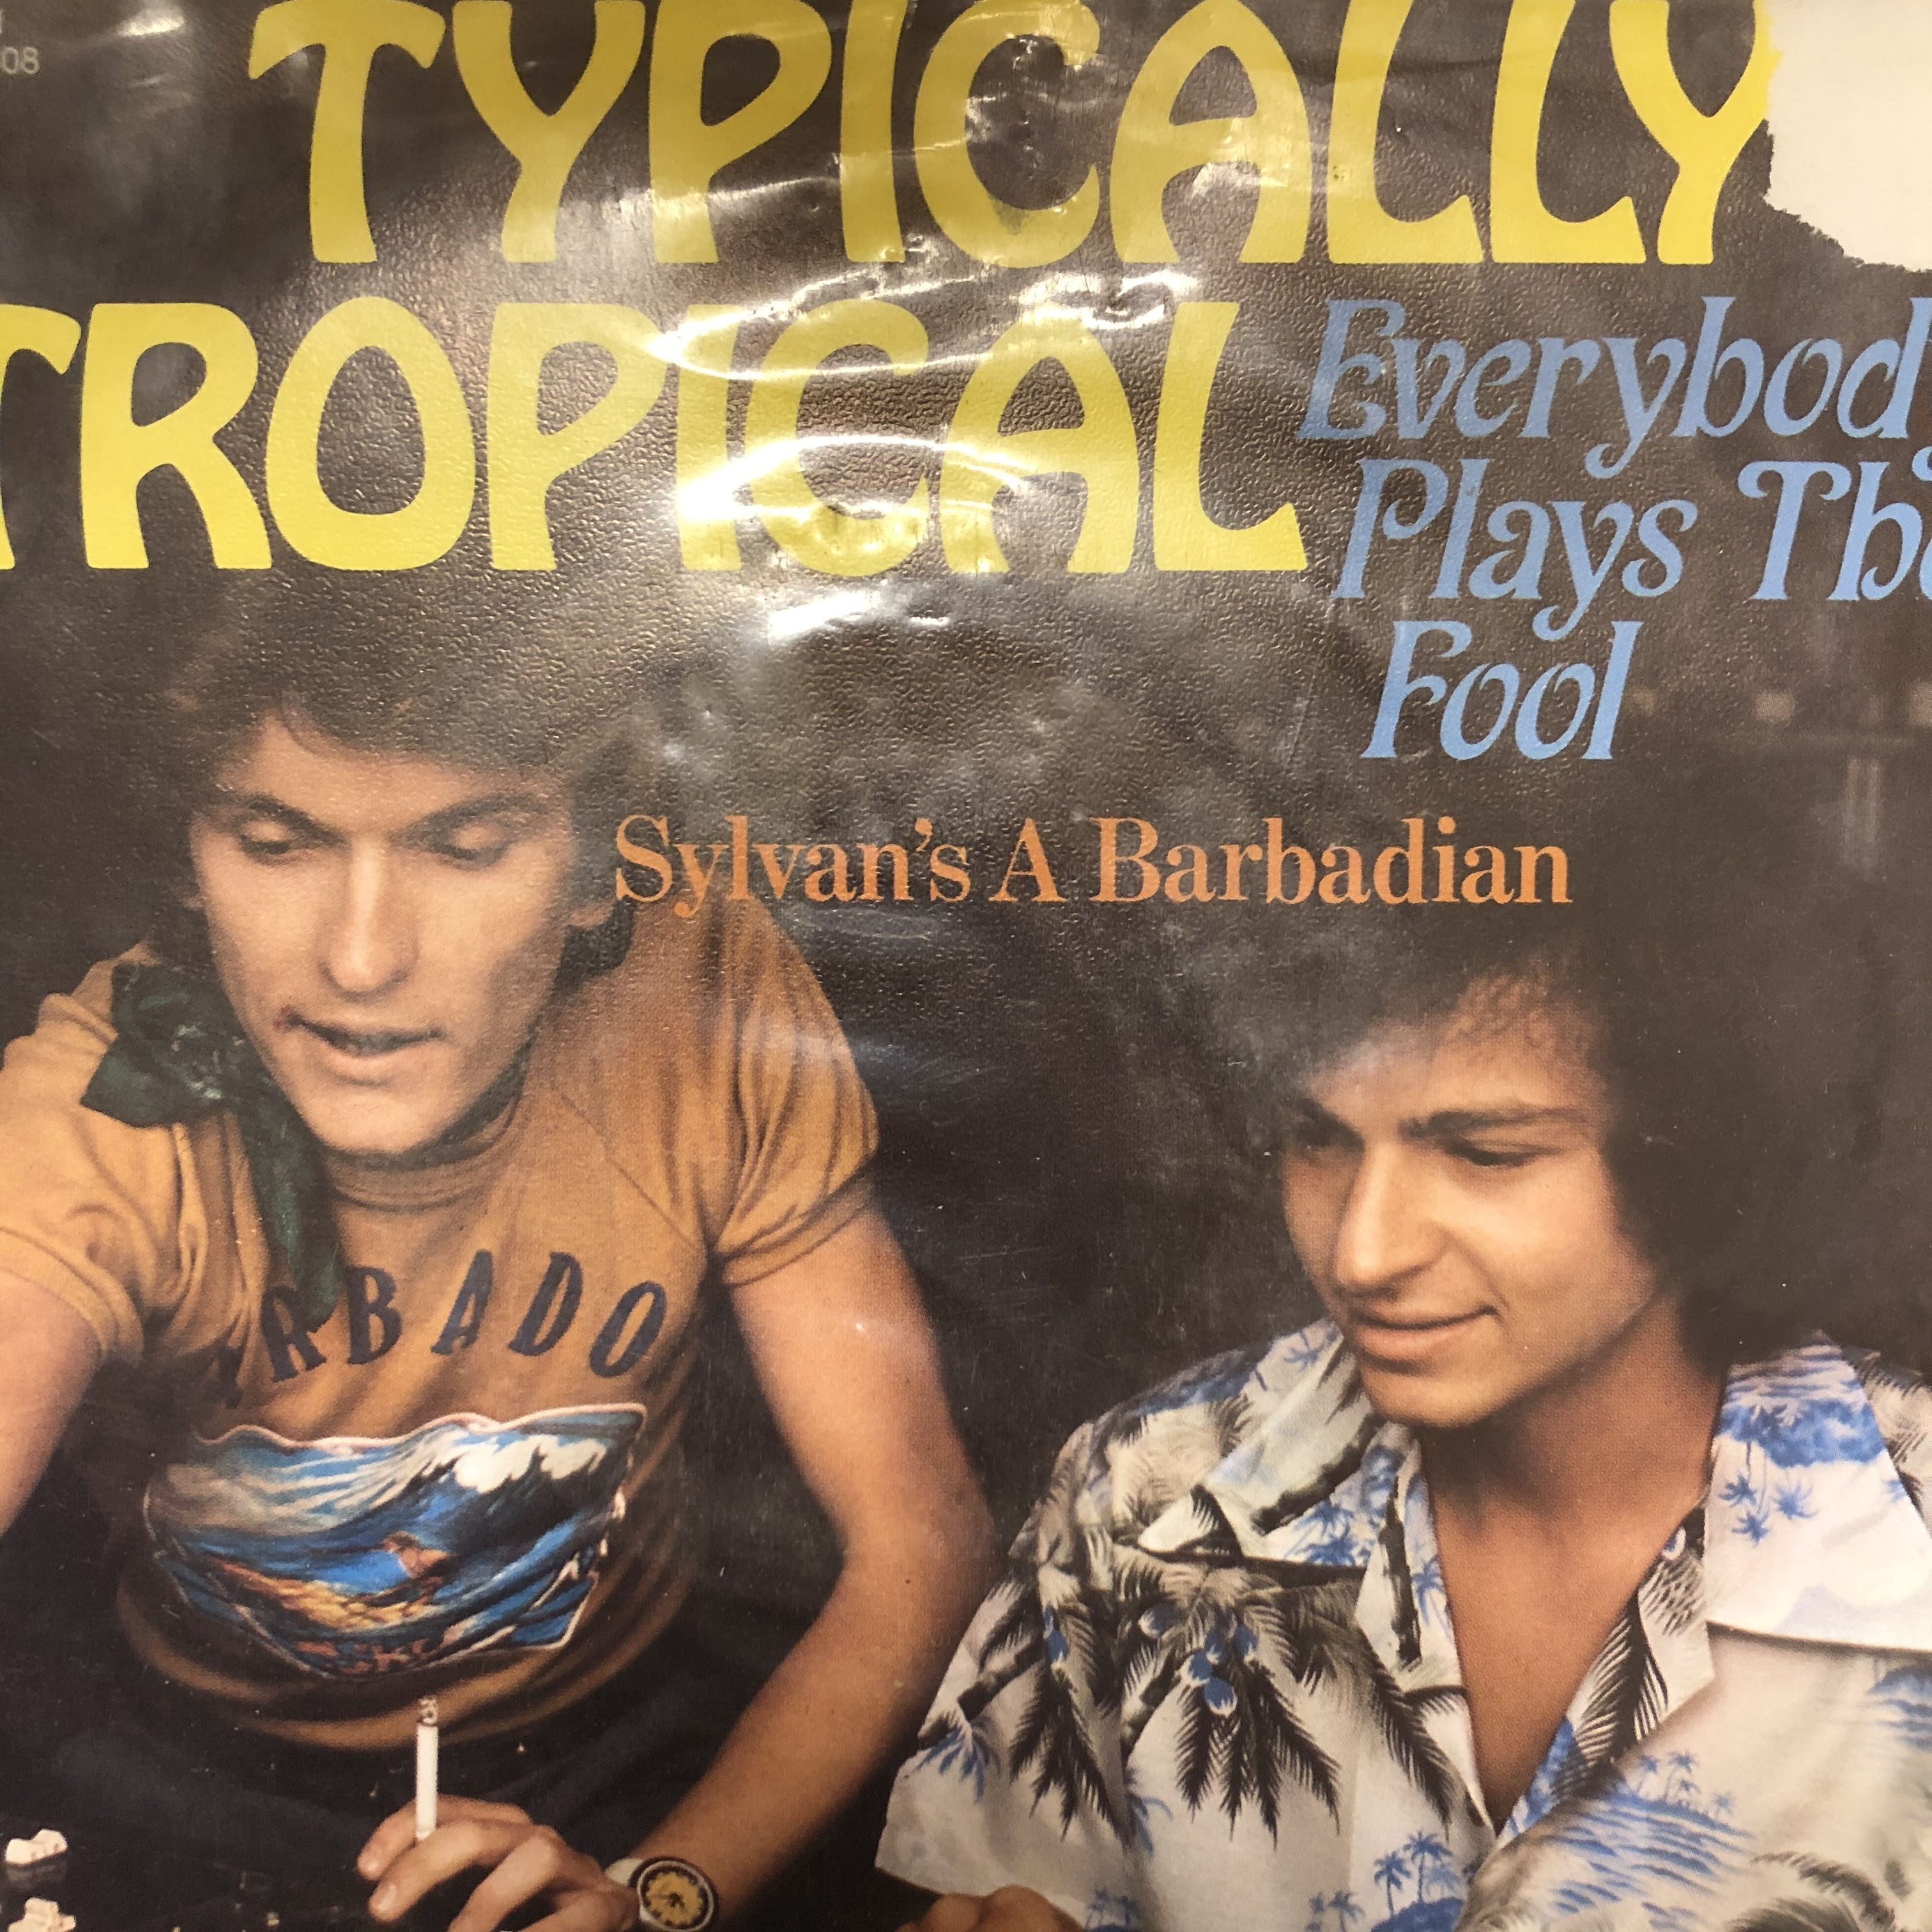 Typically Tropical - Everybody Plays The Fool【7-20494】